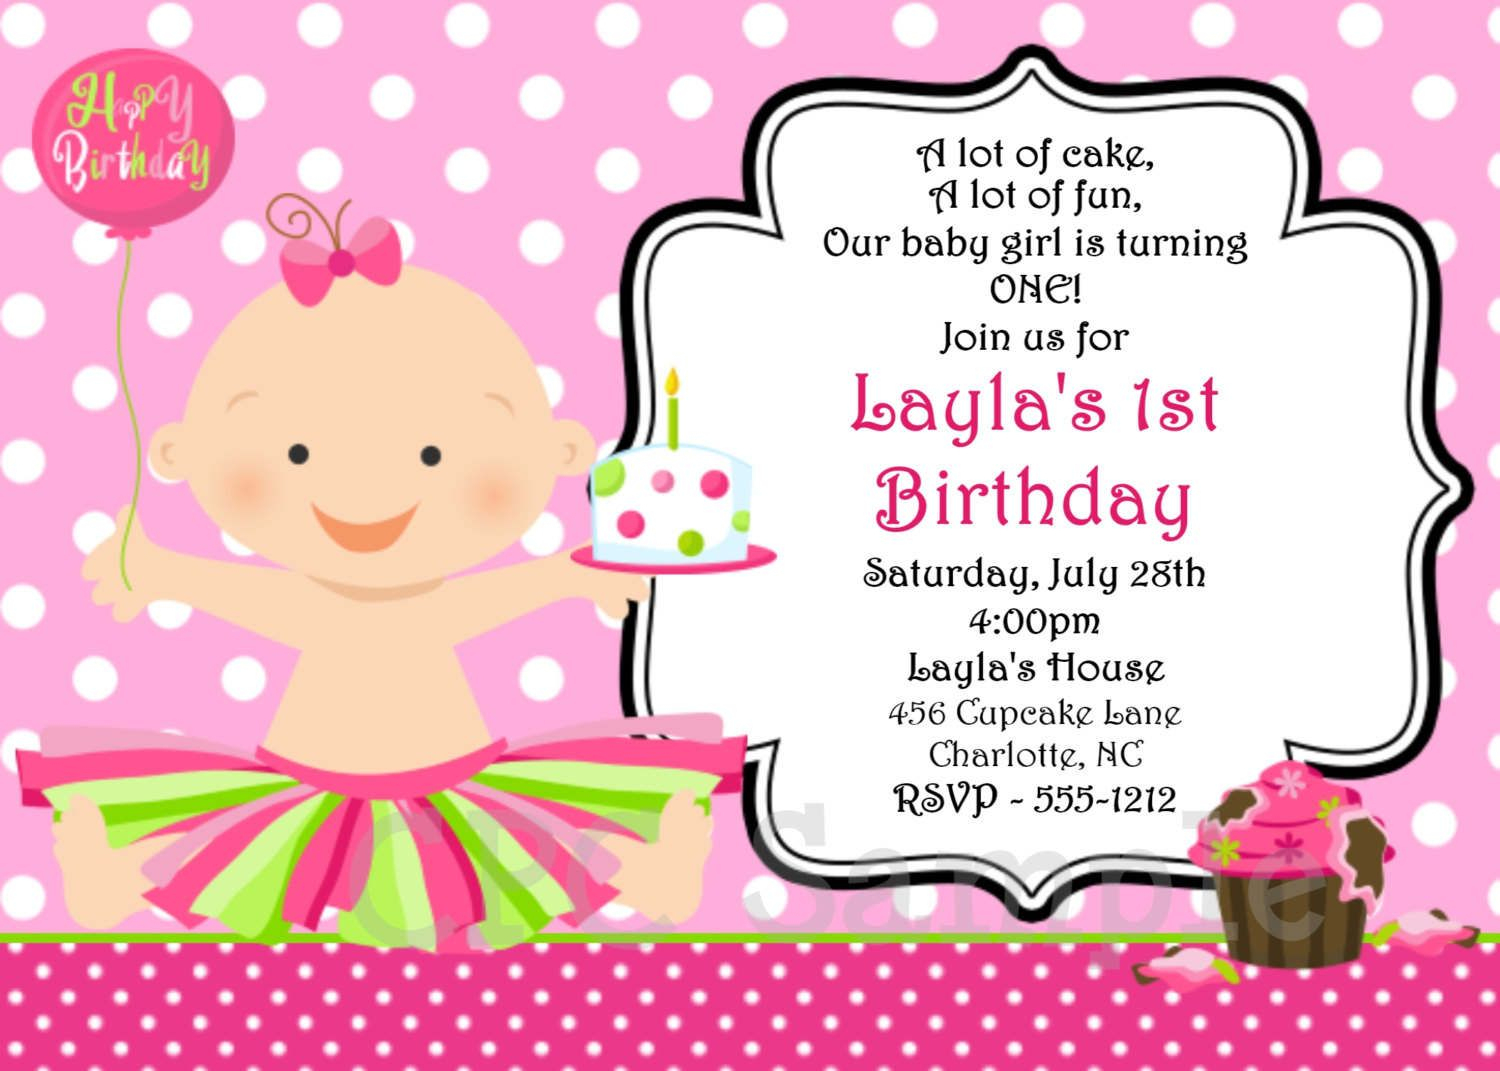 Birthday Invites Free Birthday Invitation Maker Images Downloads - Make Your Own Printable Birthday Cards Online Free